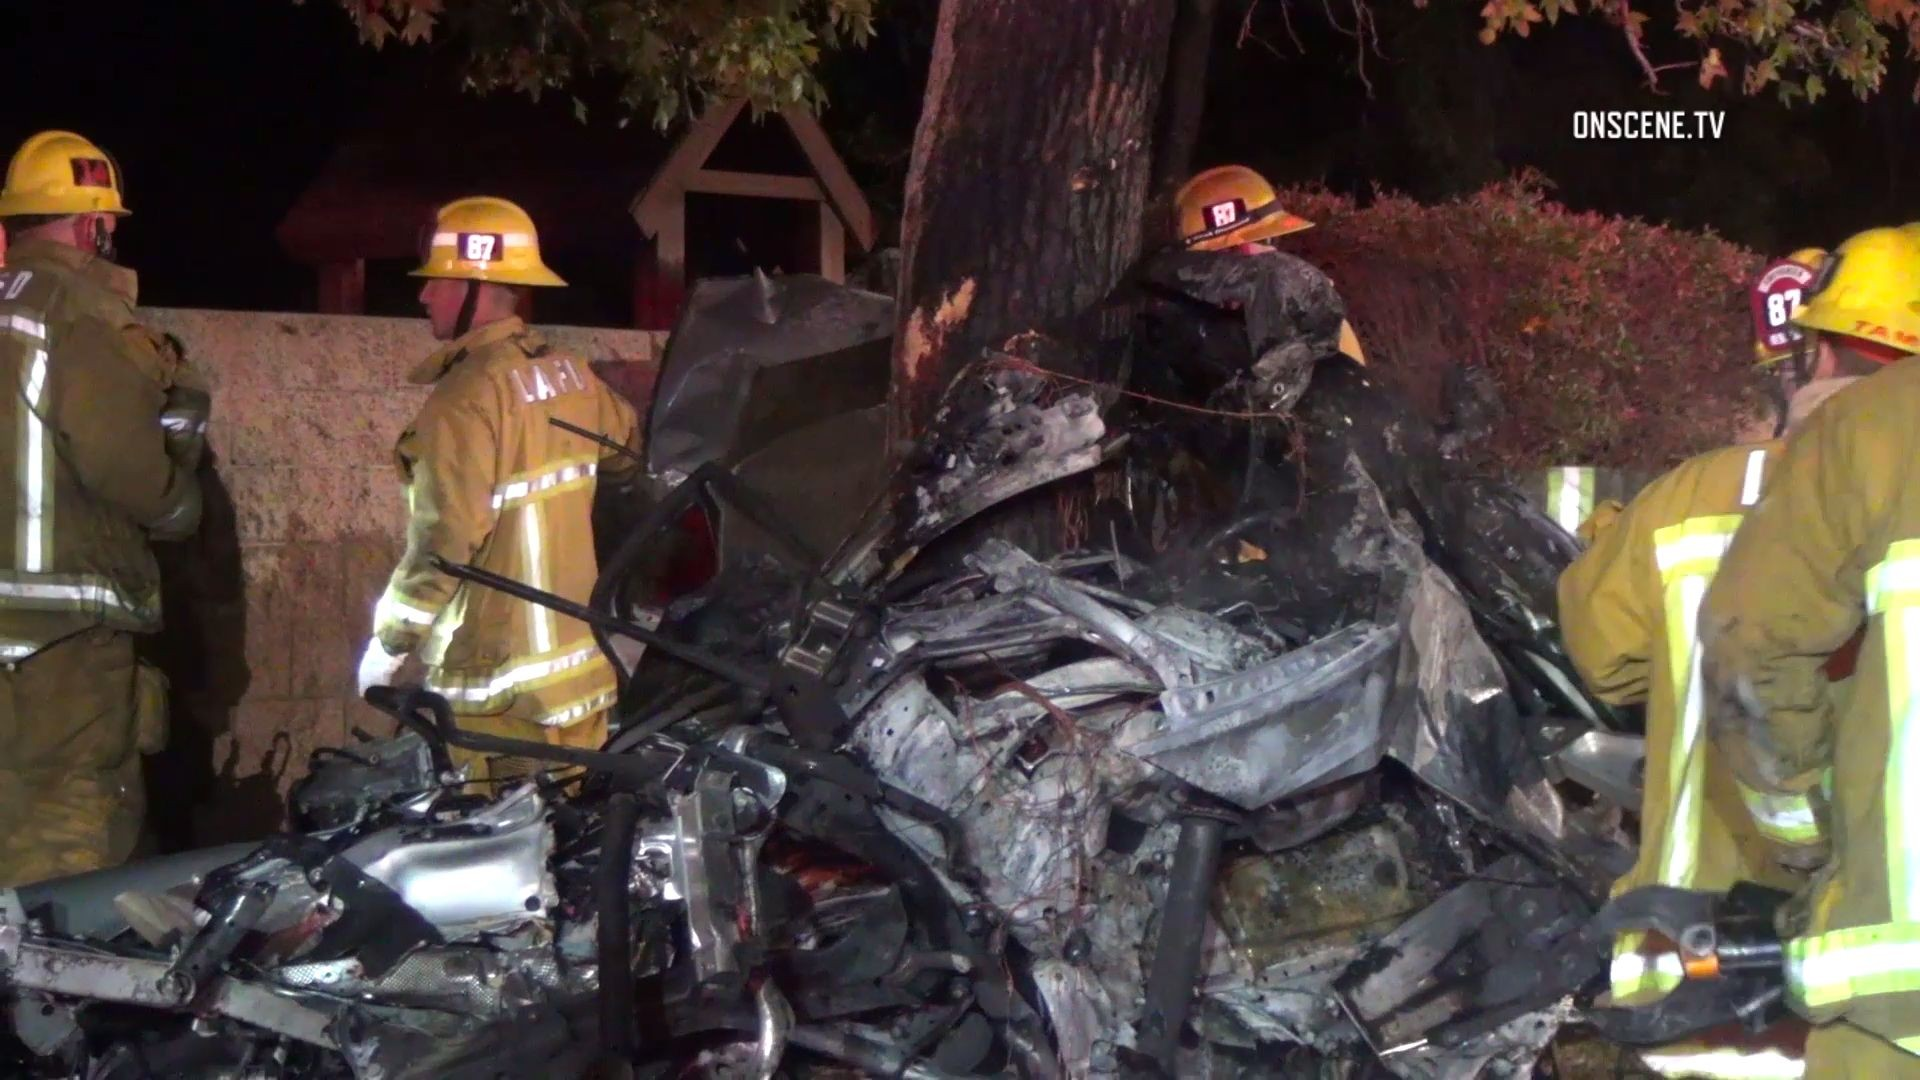 Four Killed, Vehicle Split in Two in Fiery Crash